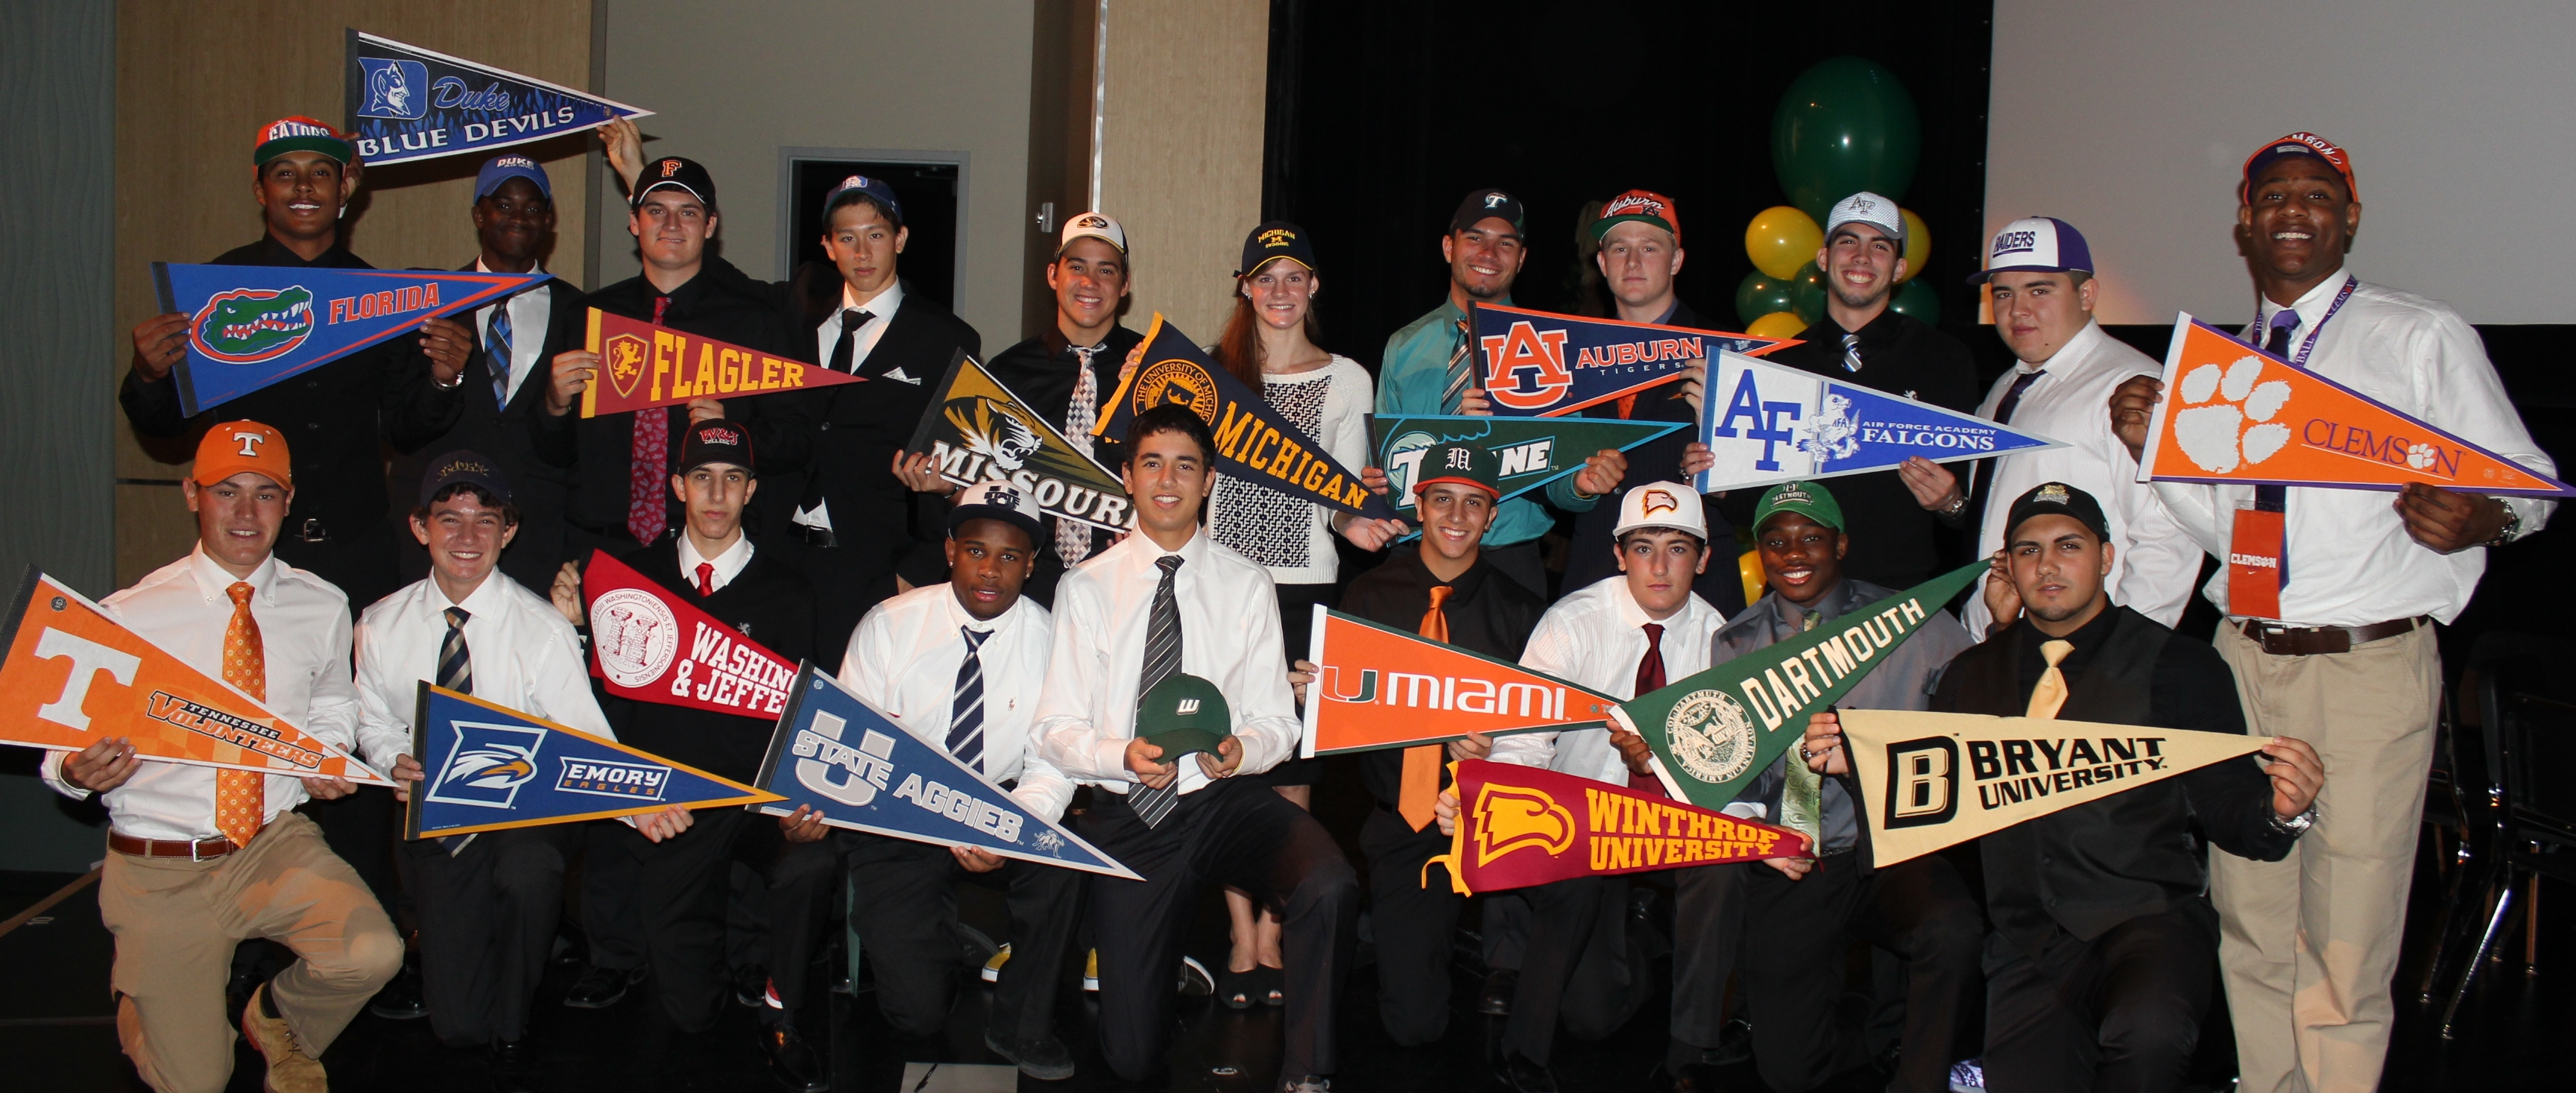 Florida State University Football >> University School Signs 21 Student Athletes to Colleges on National Signing Day | NSU Newsroom